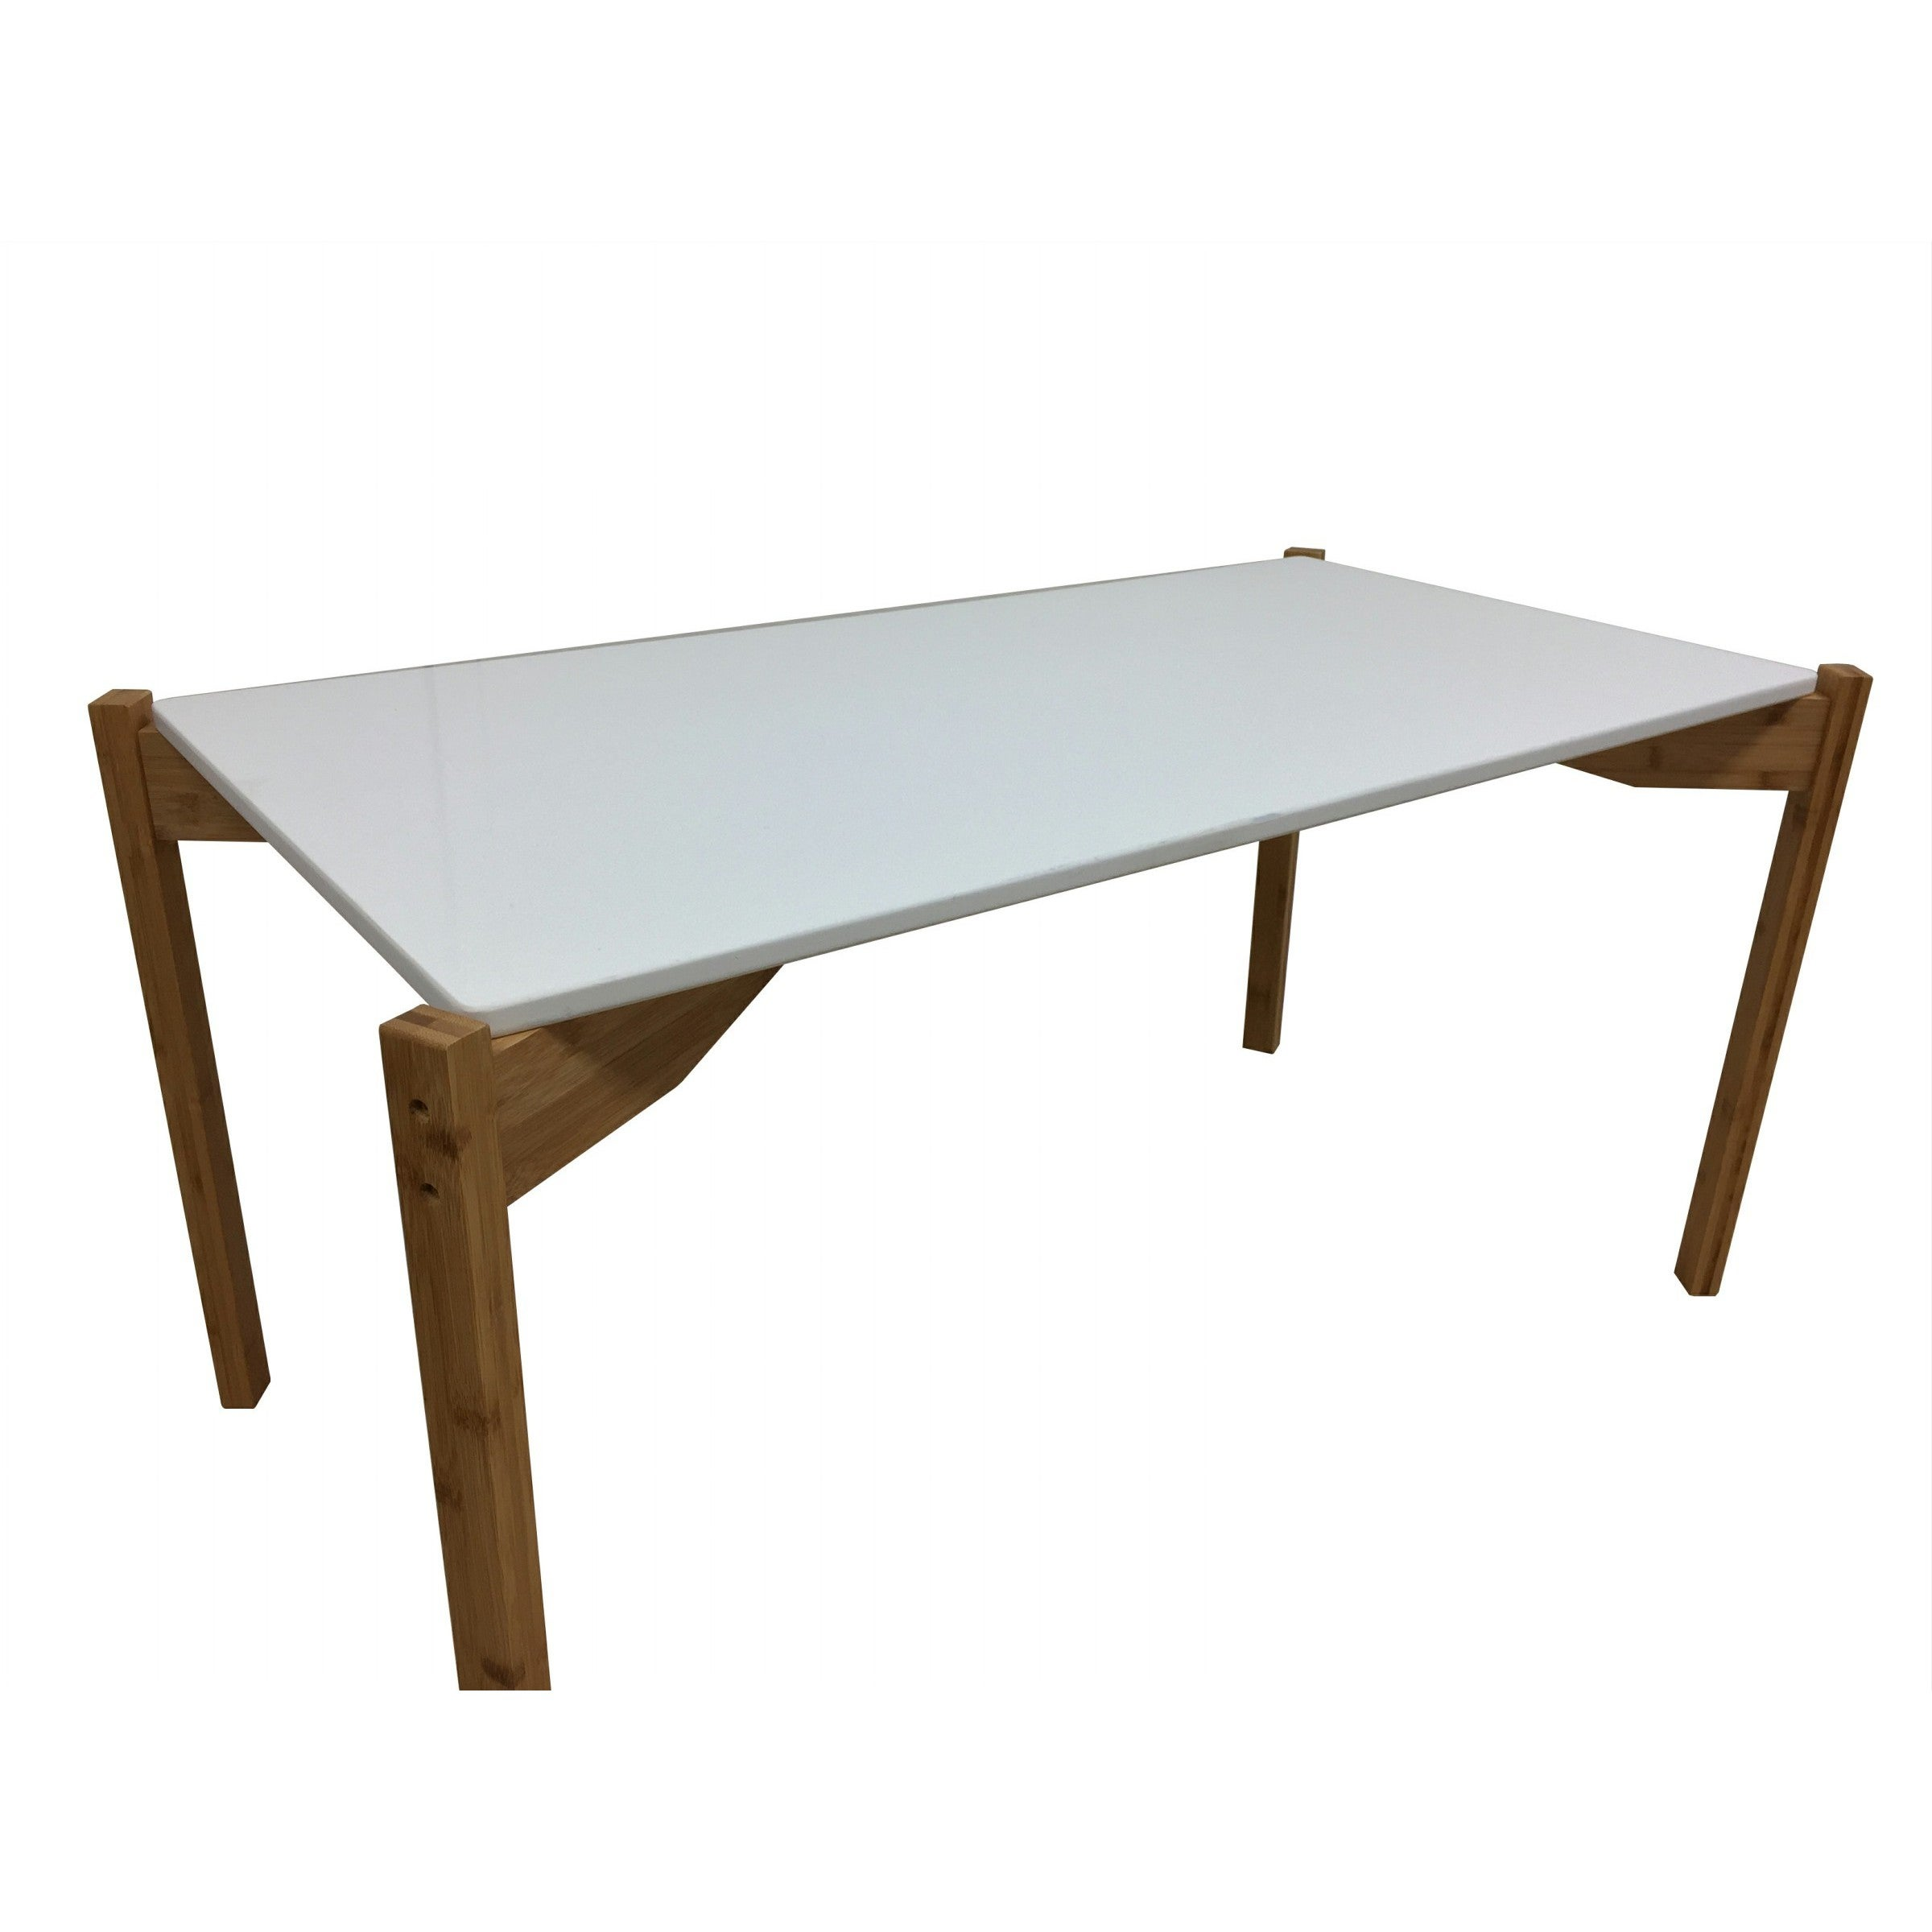 Extra Long Coffee Table Free Shipping Today 16324805